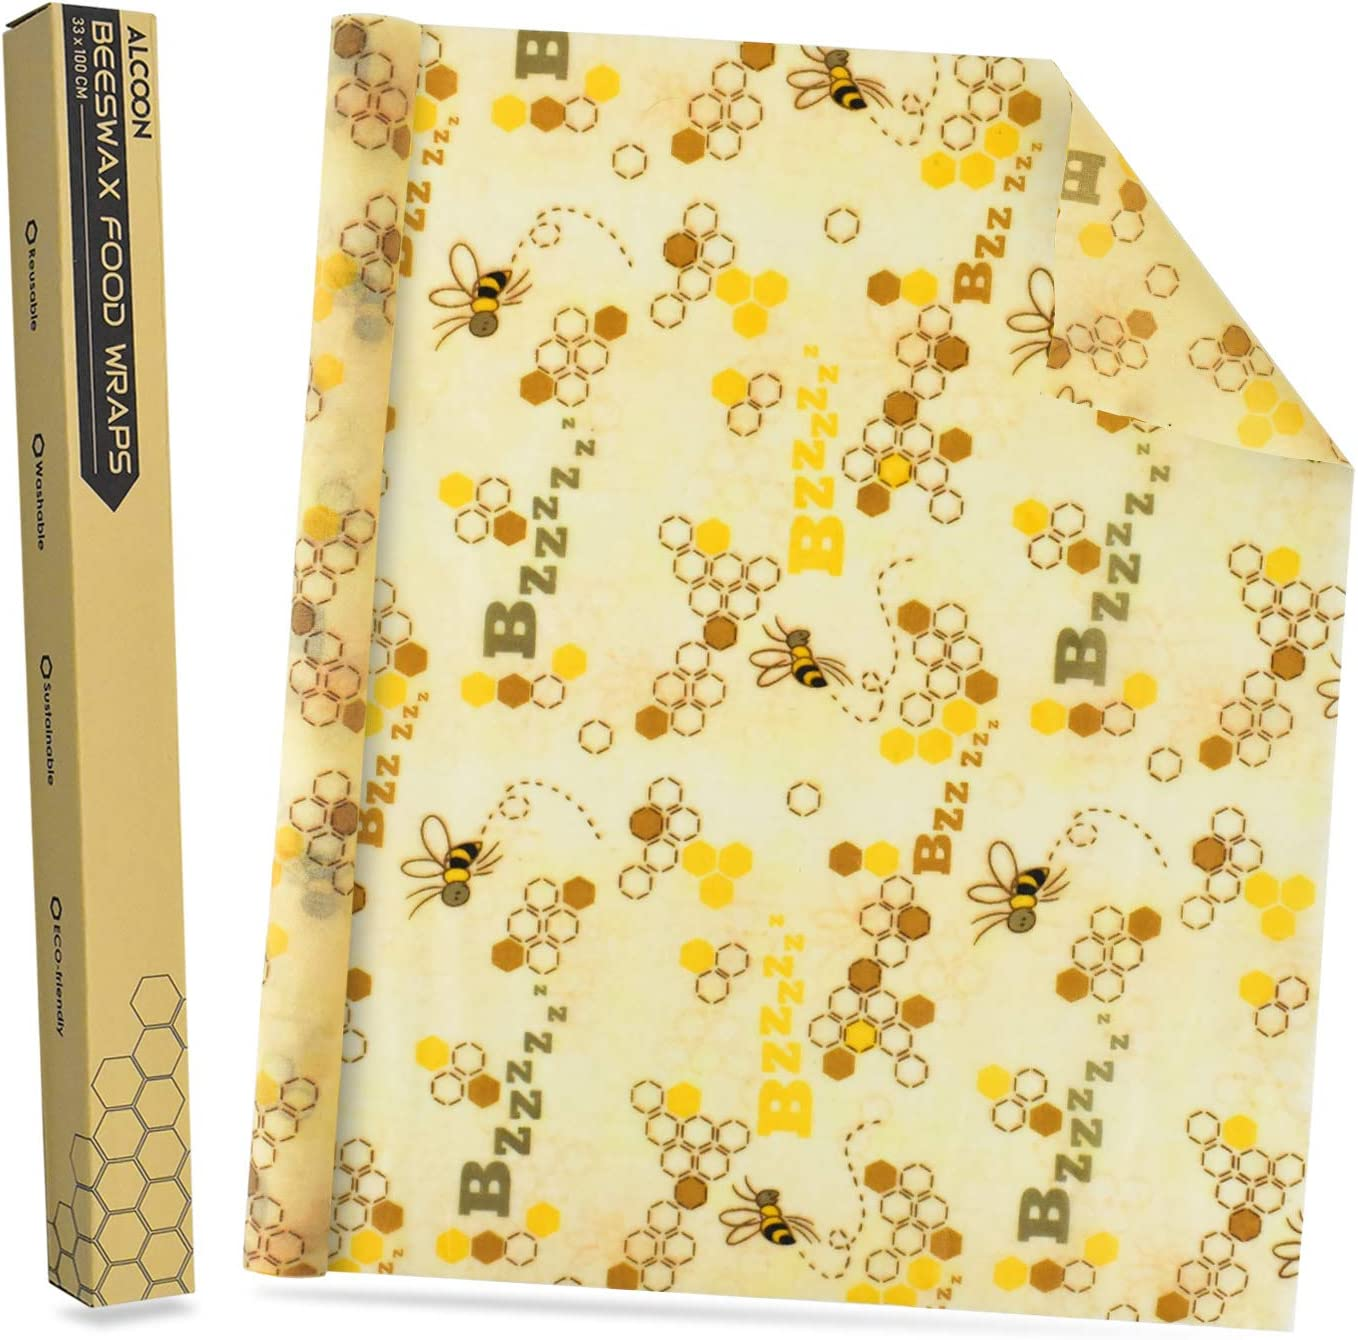 Alcoon Beeswax Food Wraps 1 Meter Roll 13 x 39 Inch Reusable Beeswax Wraps Eco-Friendly Sustainable Food Storage Wraps for Sandwich, Cheese, Fruit, Bread, Snacks (Bee Pattern)